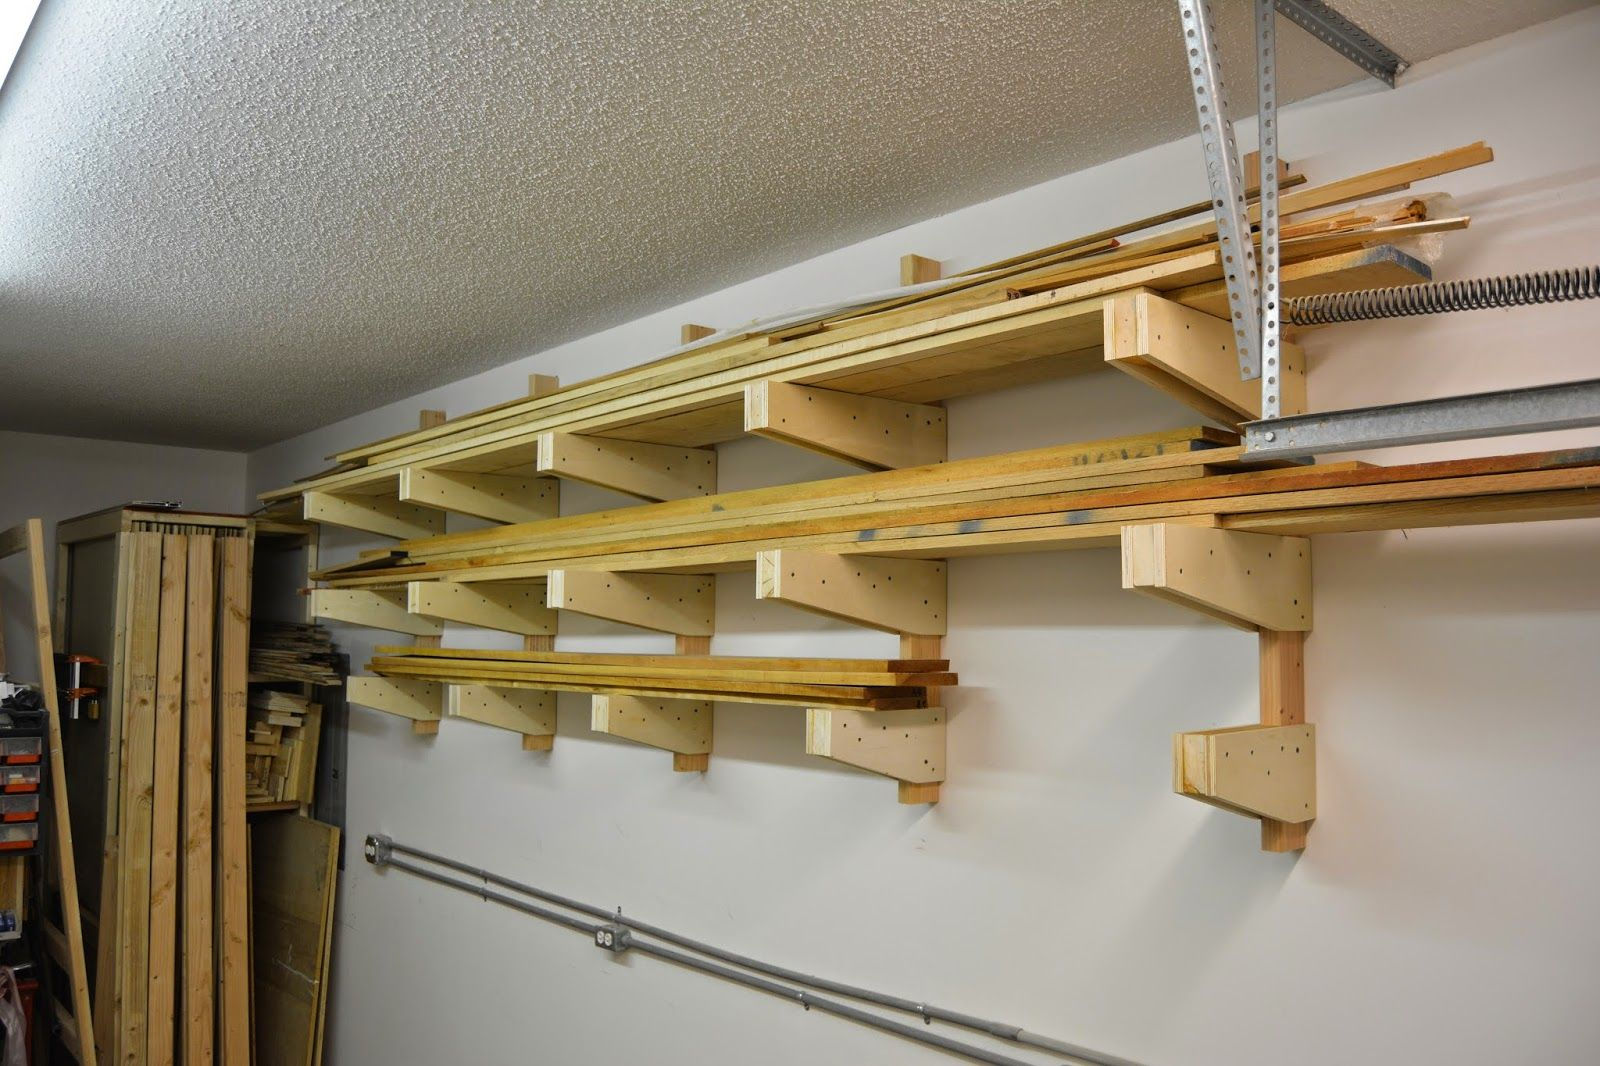 9 Diy Ideas For Wood Storage Wood Projects Pinterest Lumber